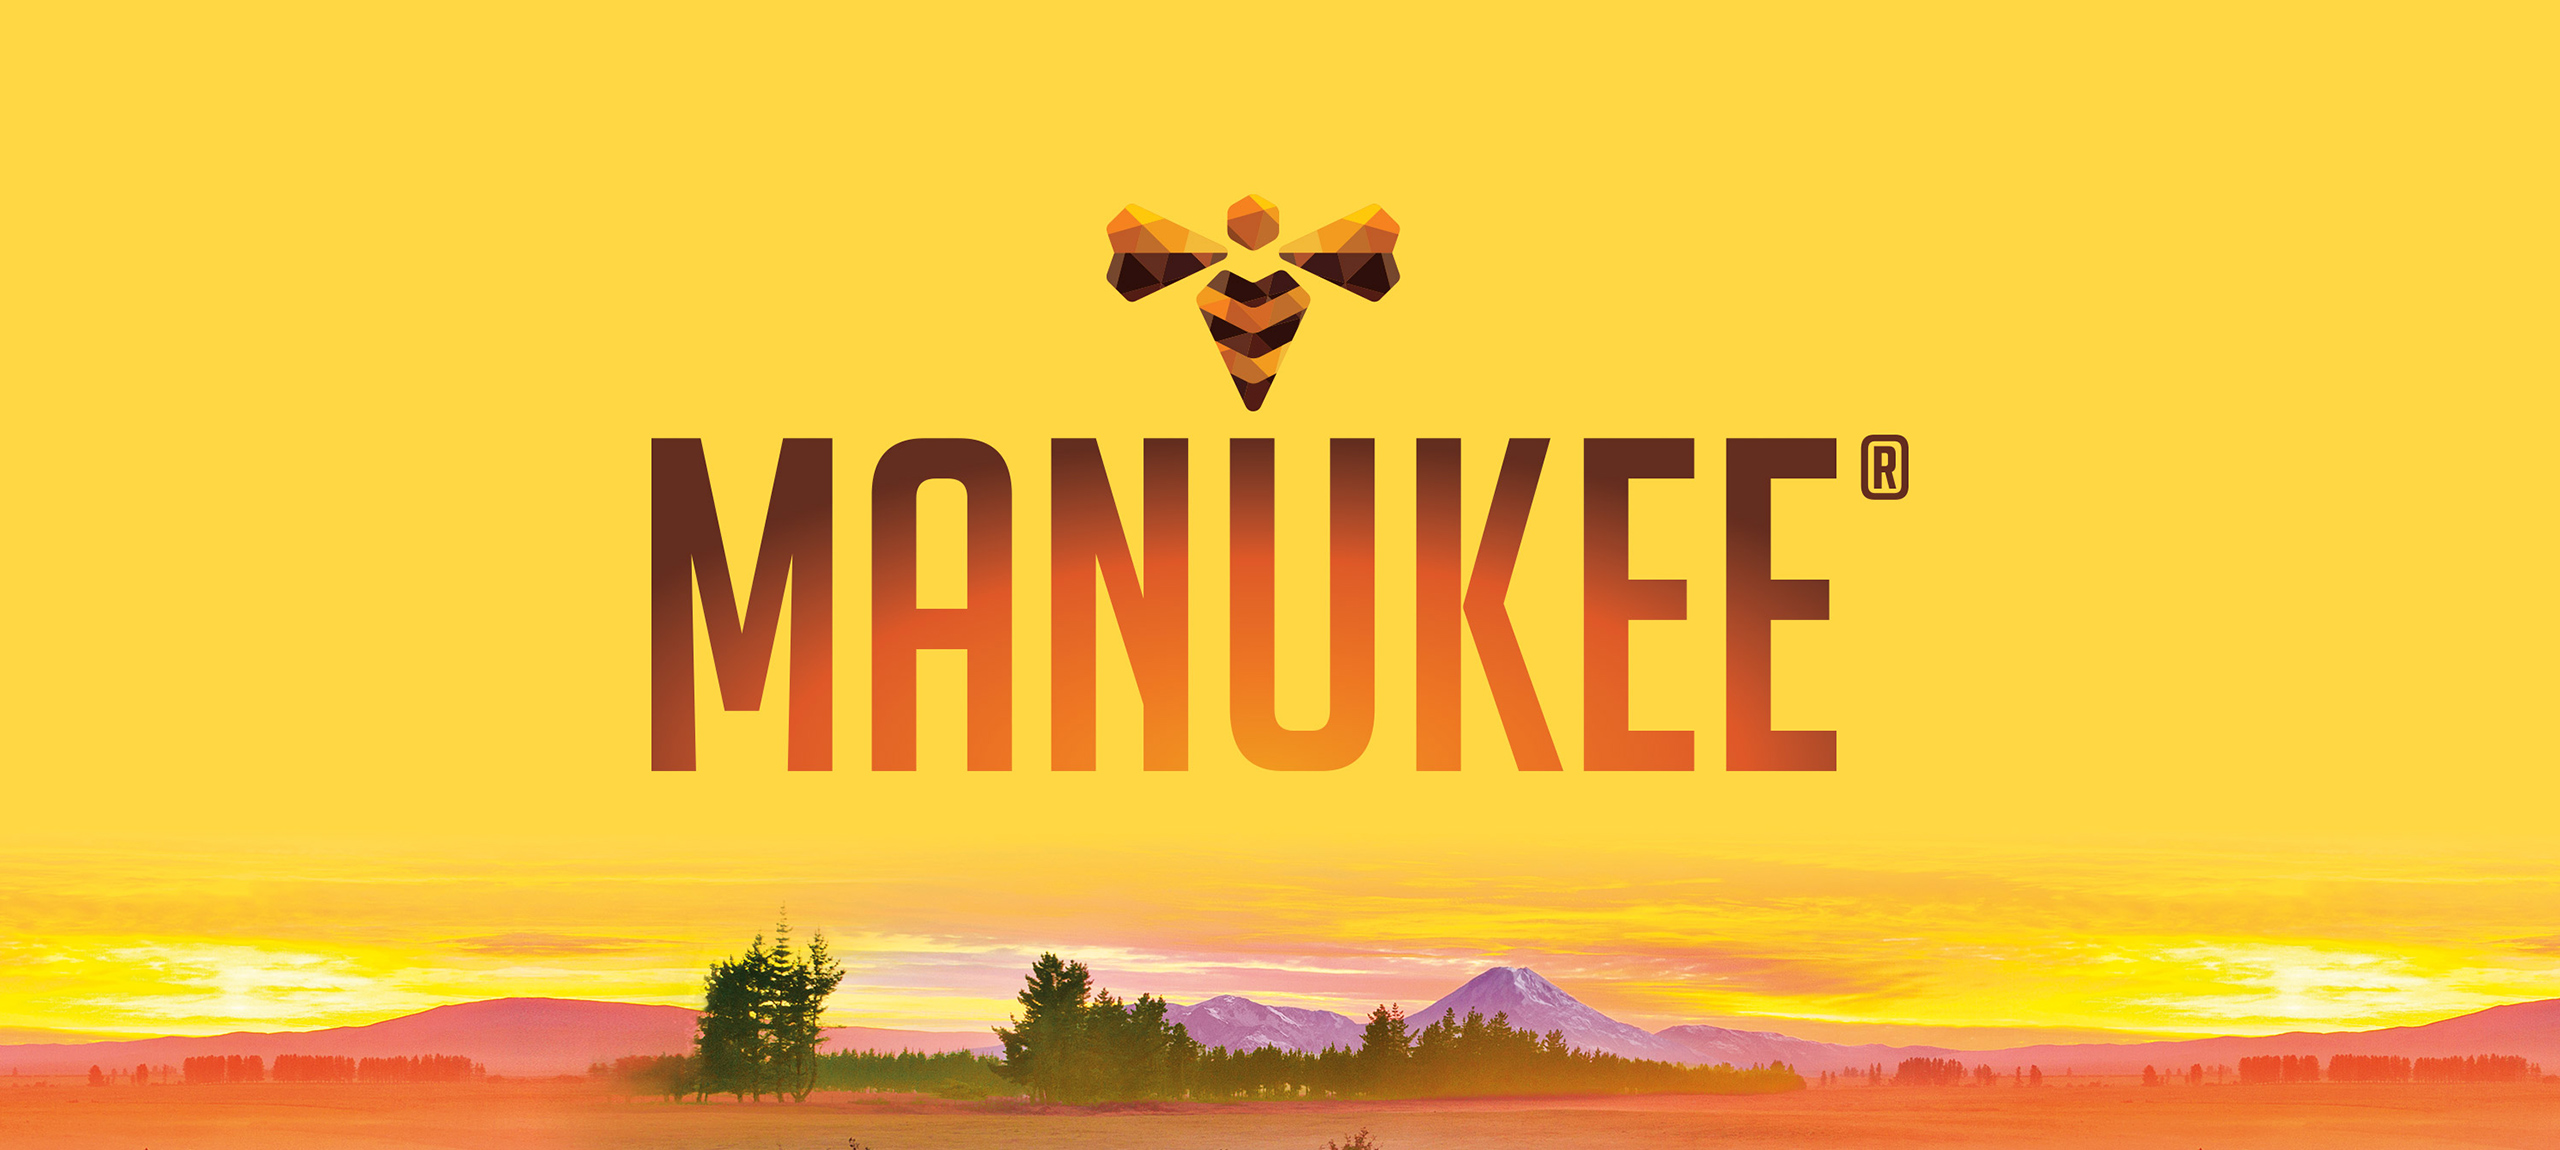 Manukee Honey Brand Logo Banner